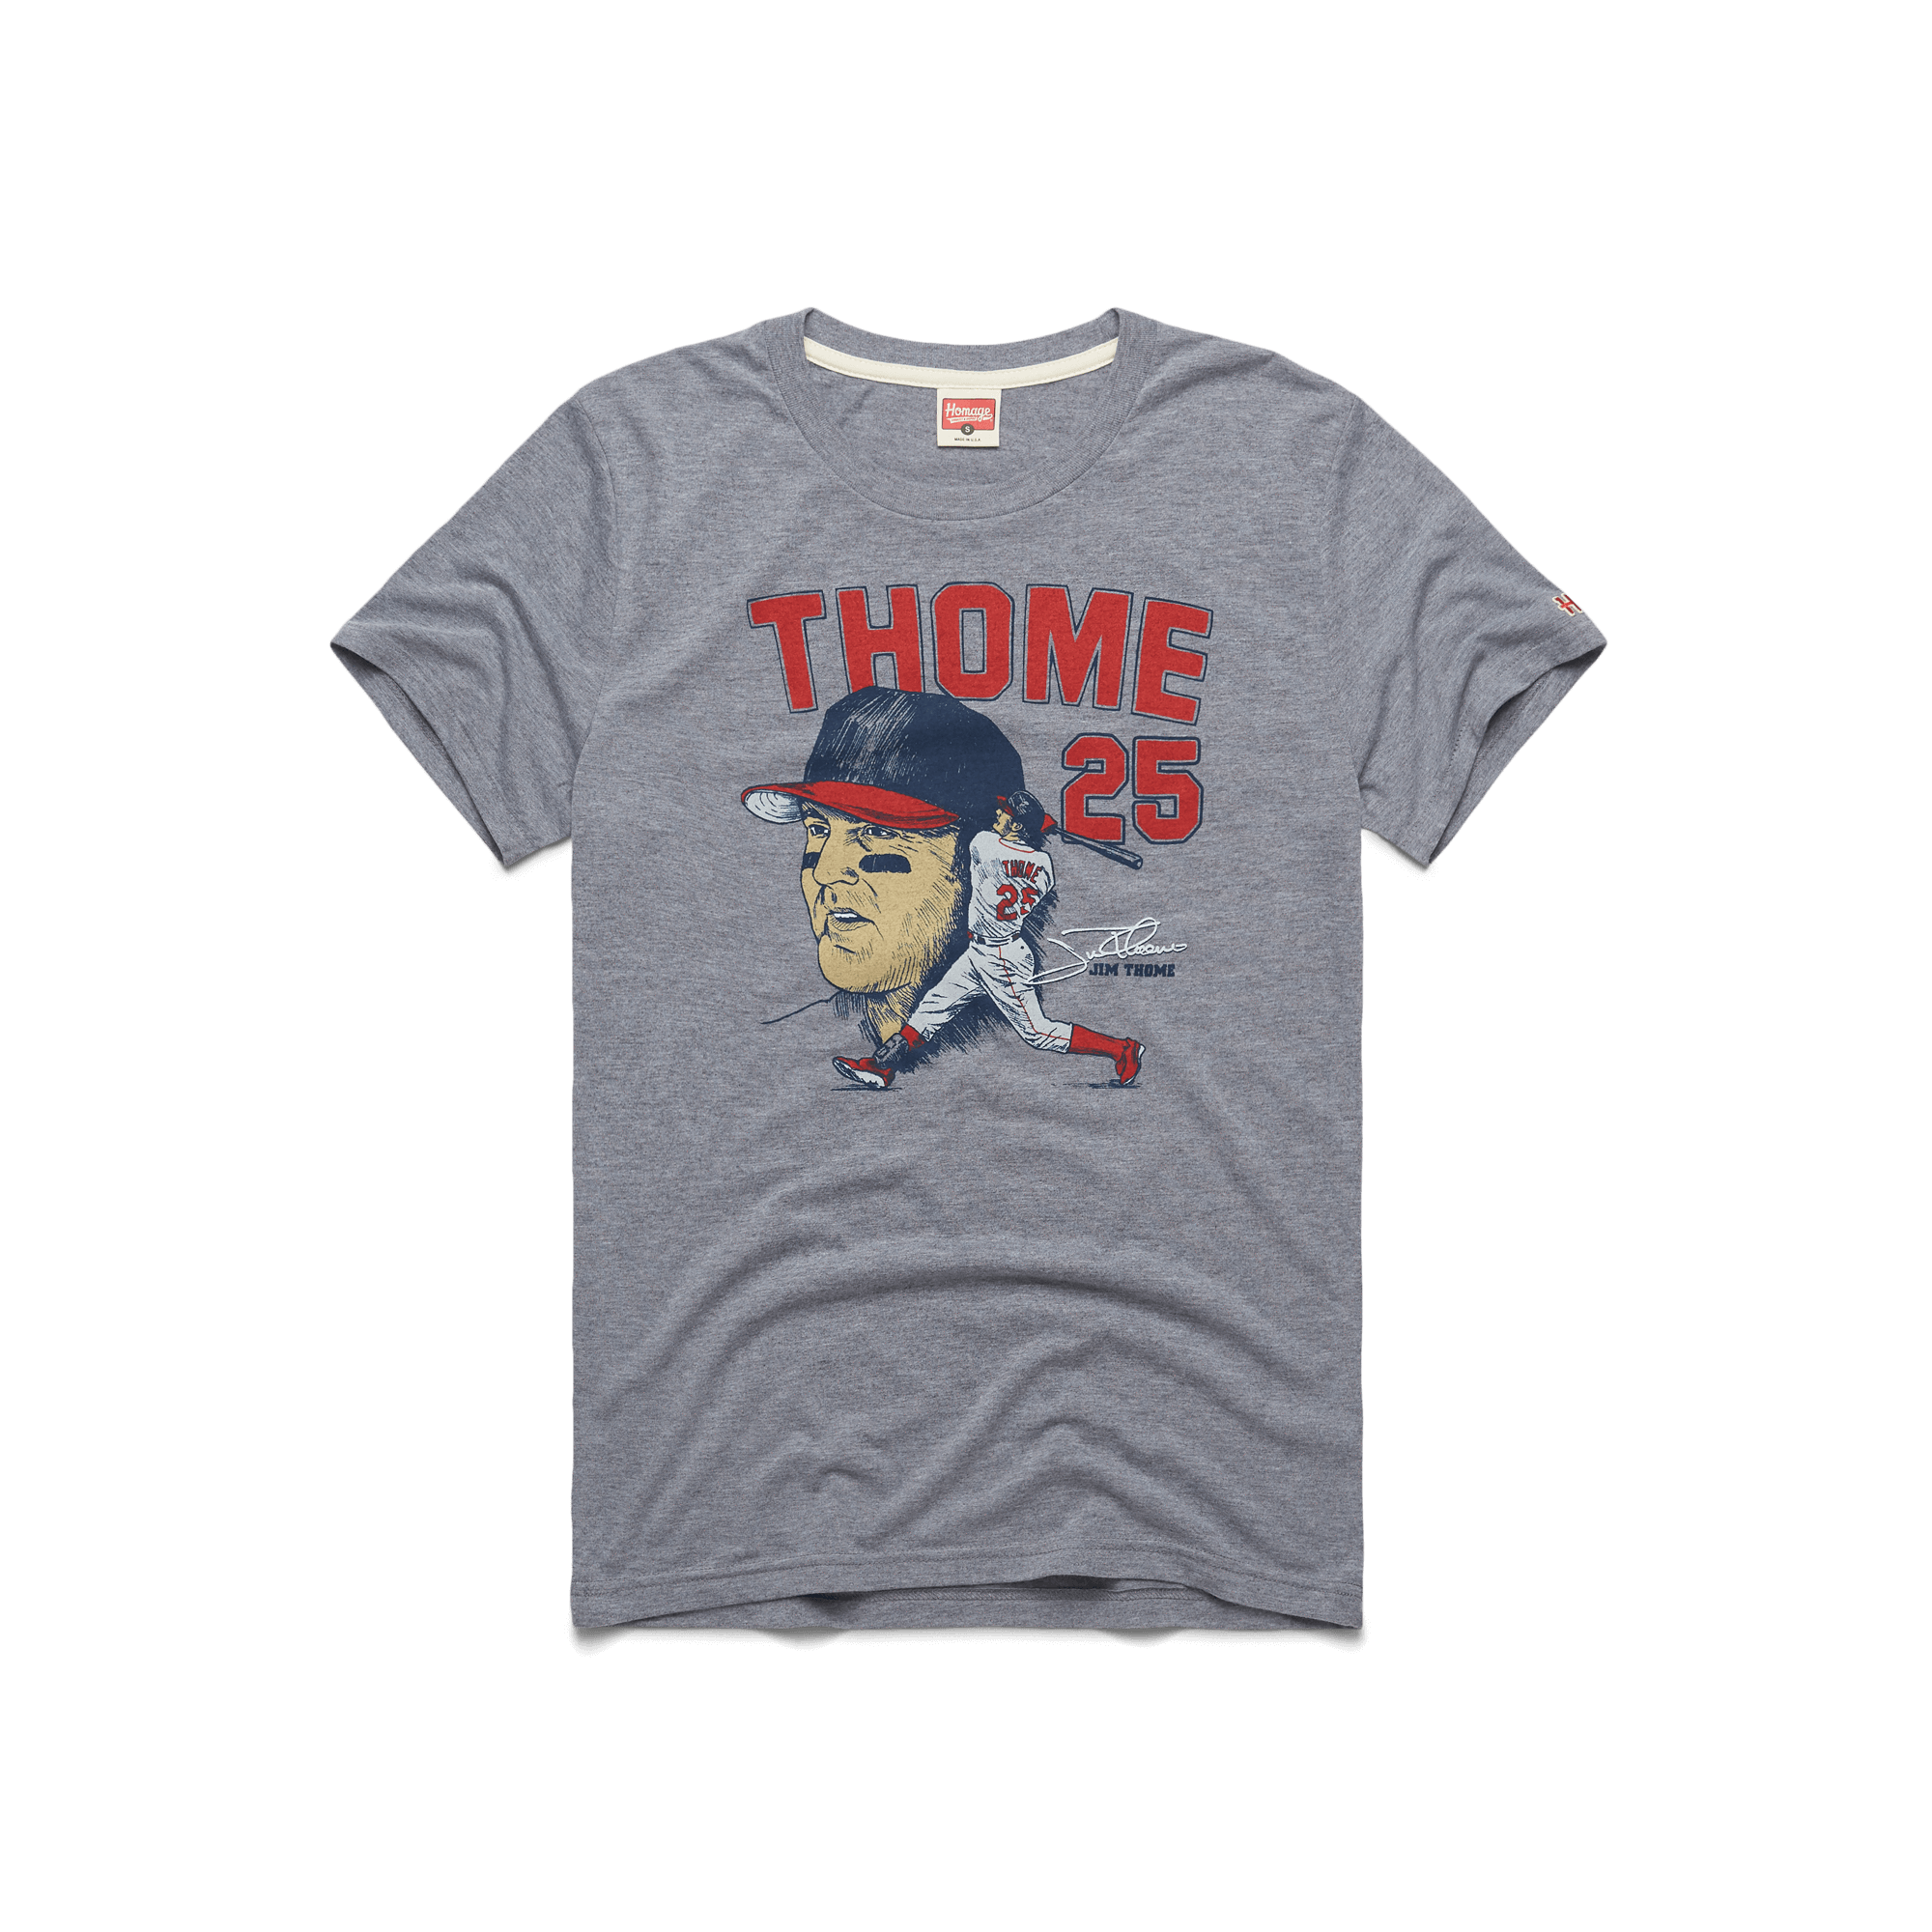 c3fd0967af Retro Baseball Apparel MLB Players Stadiums And More – HOMAGE